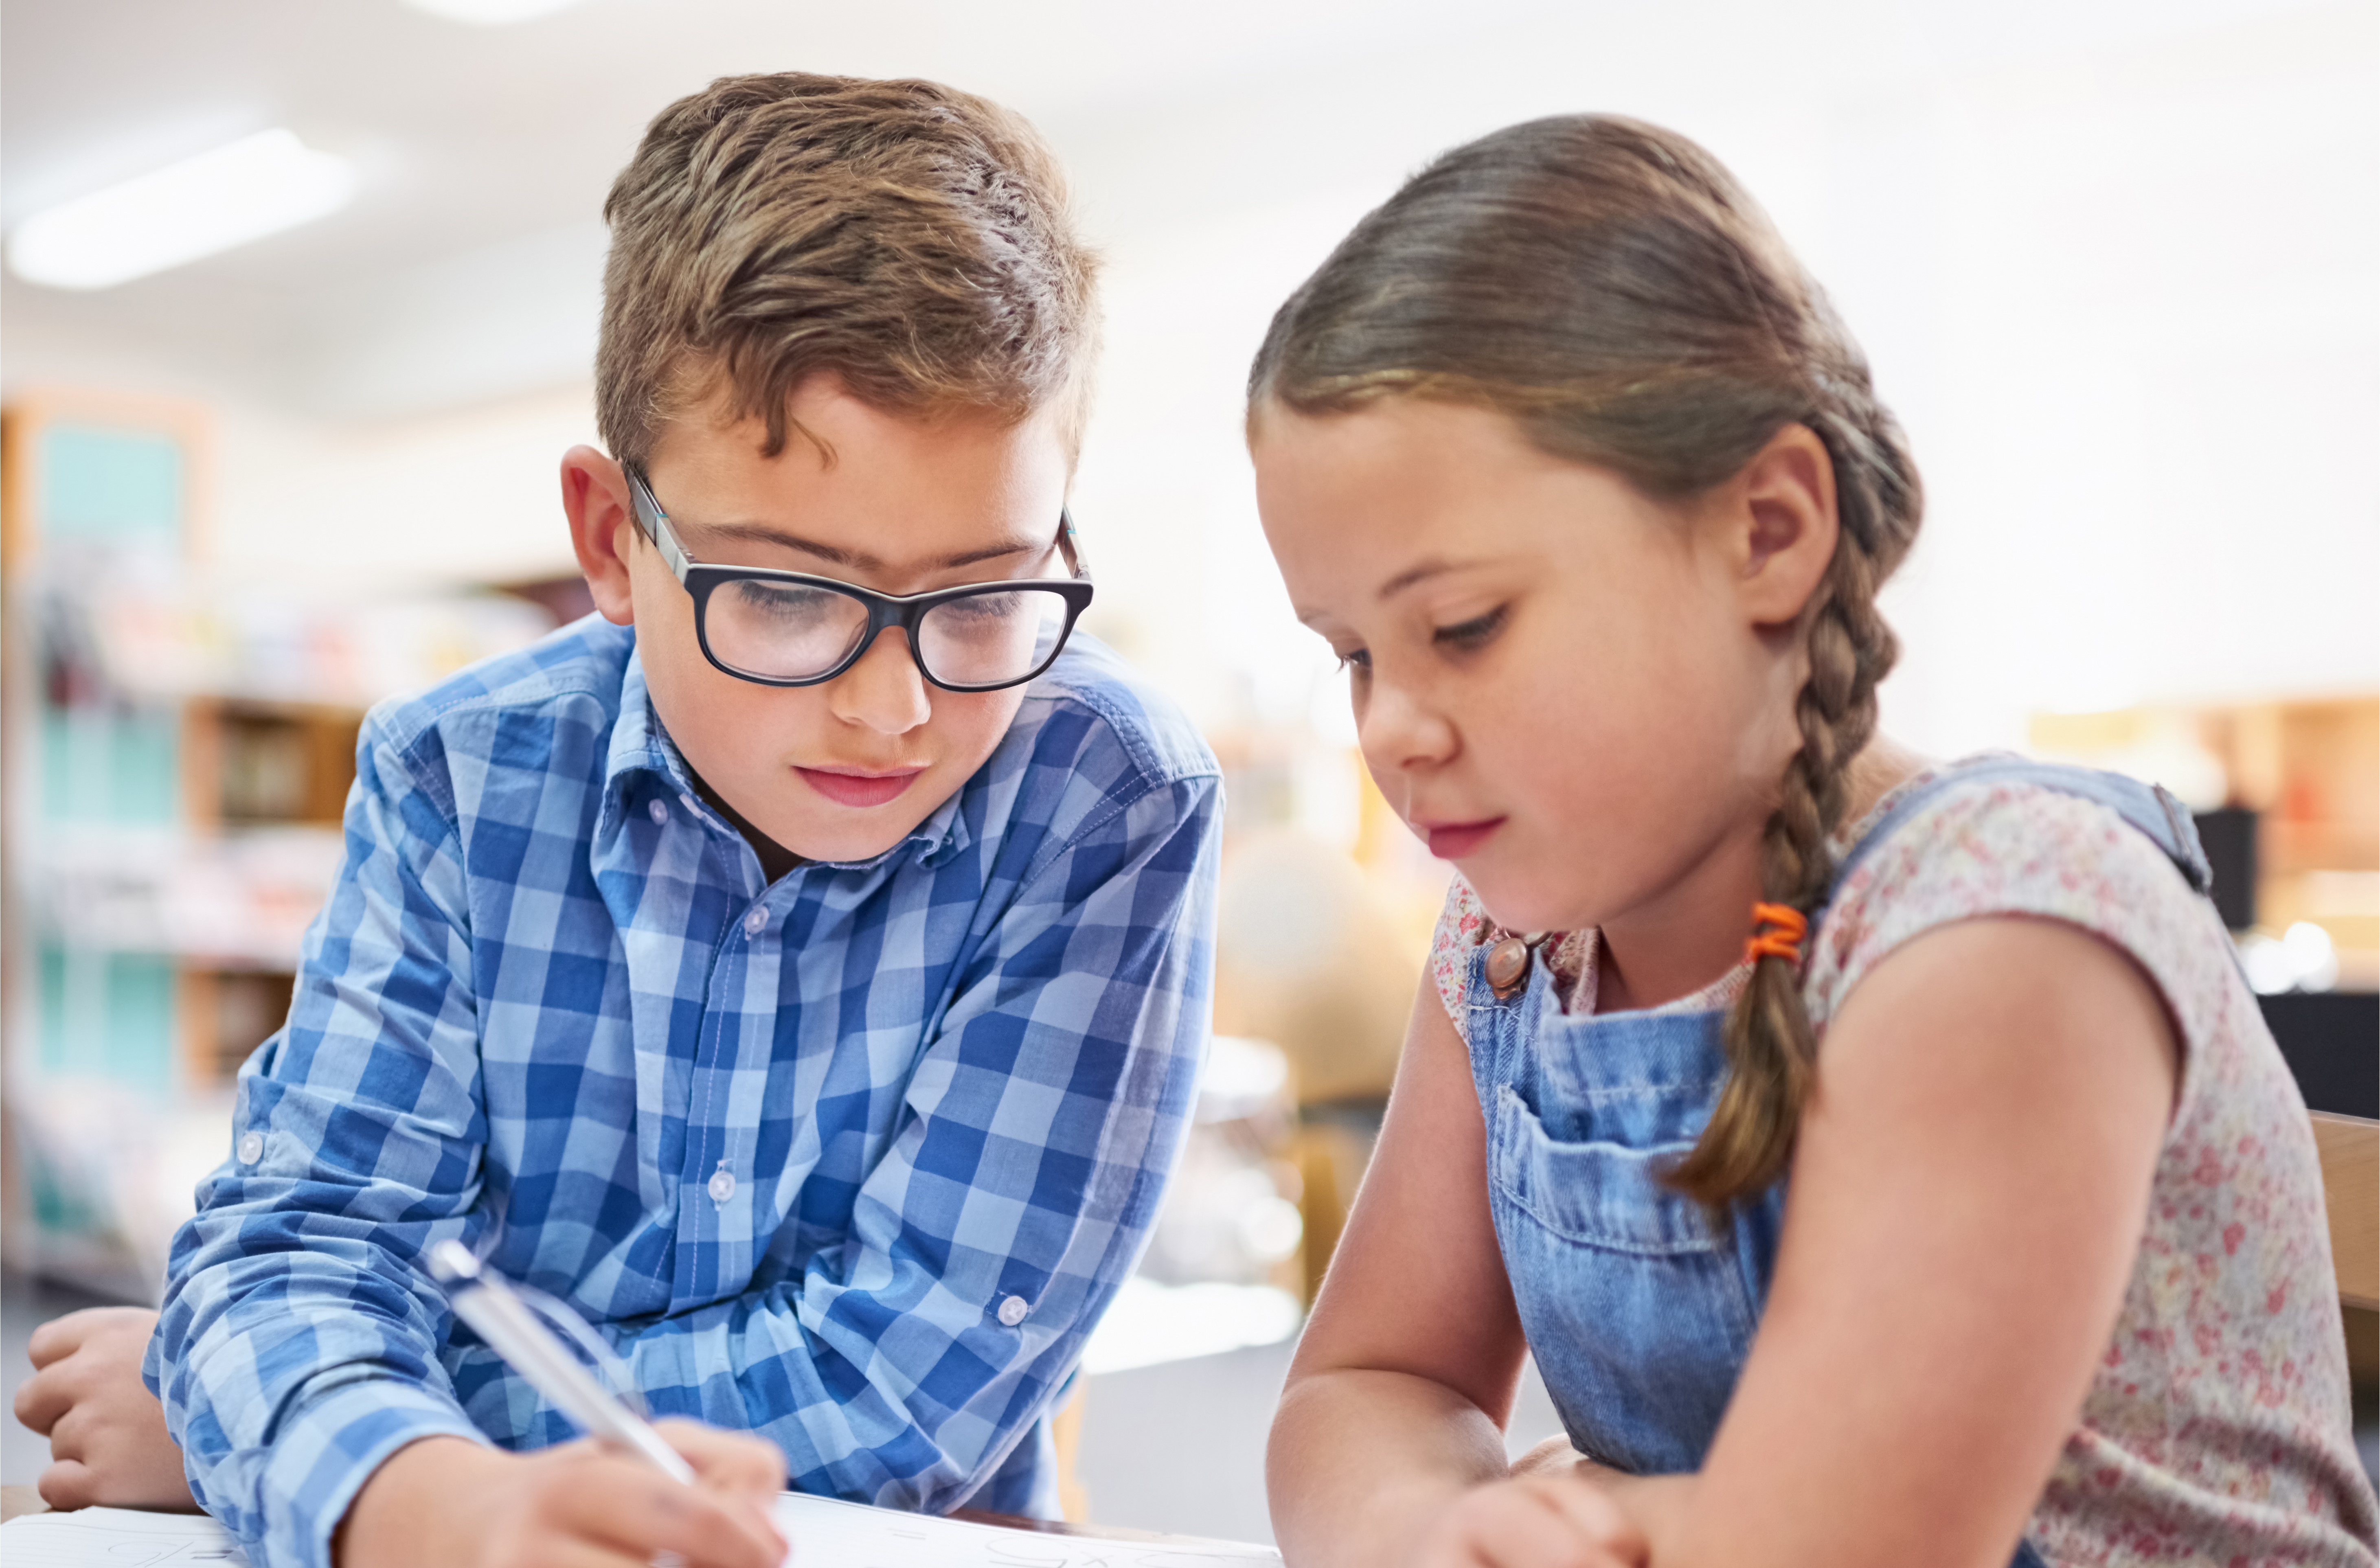 Effective math teaching strategies help students of all levels be successful at math.